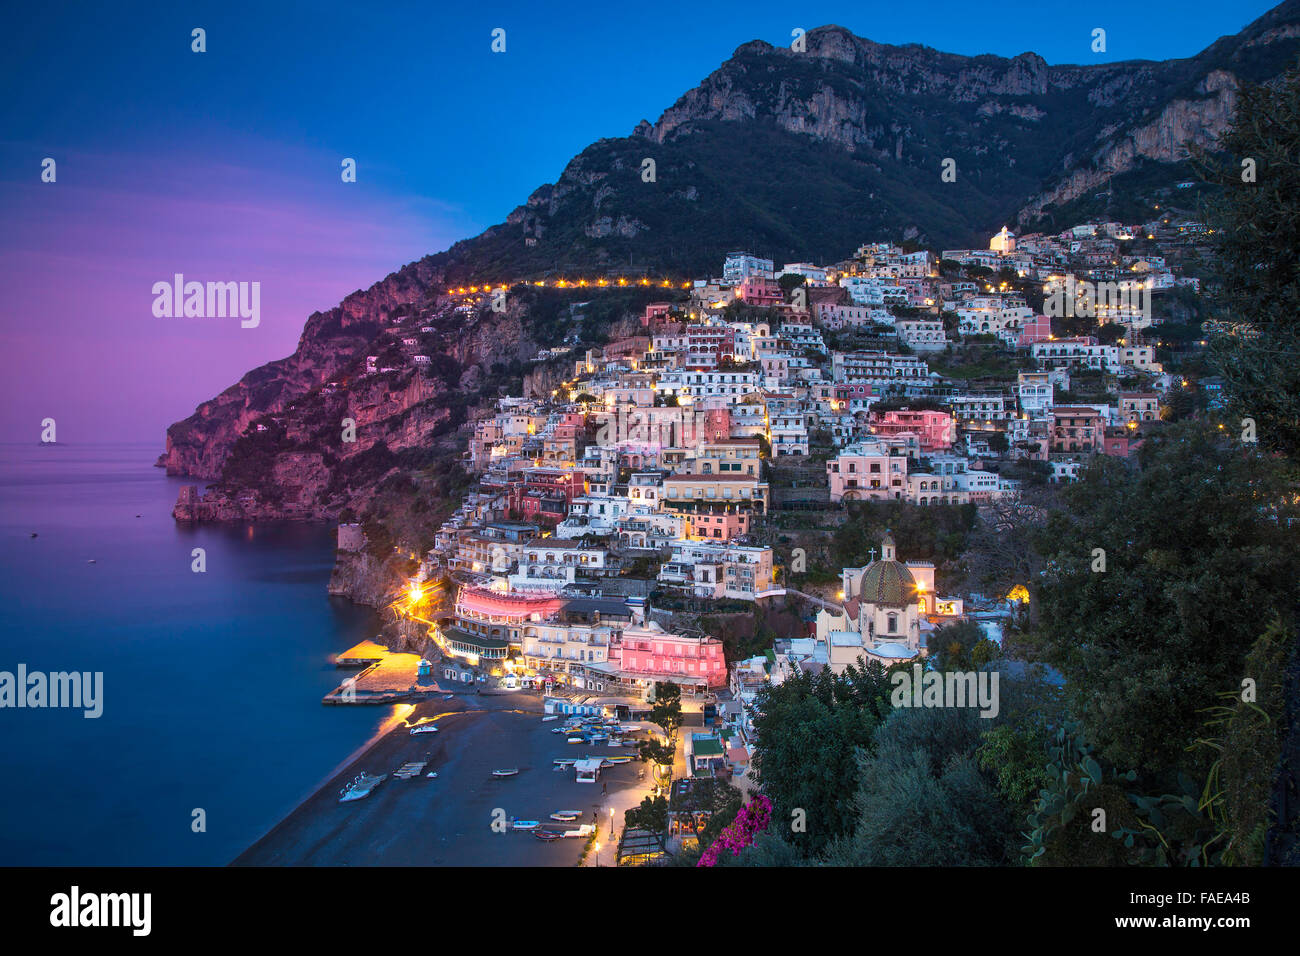 Evening view along the Amalfi coast of the hillside town of Positano, Campania, Italy - Stock Image